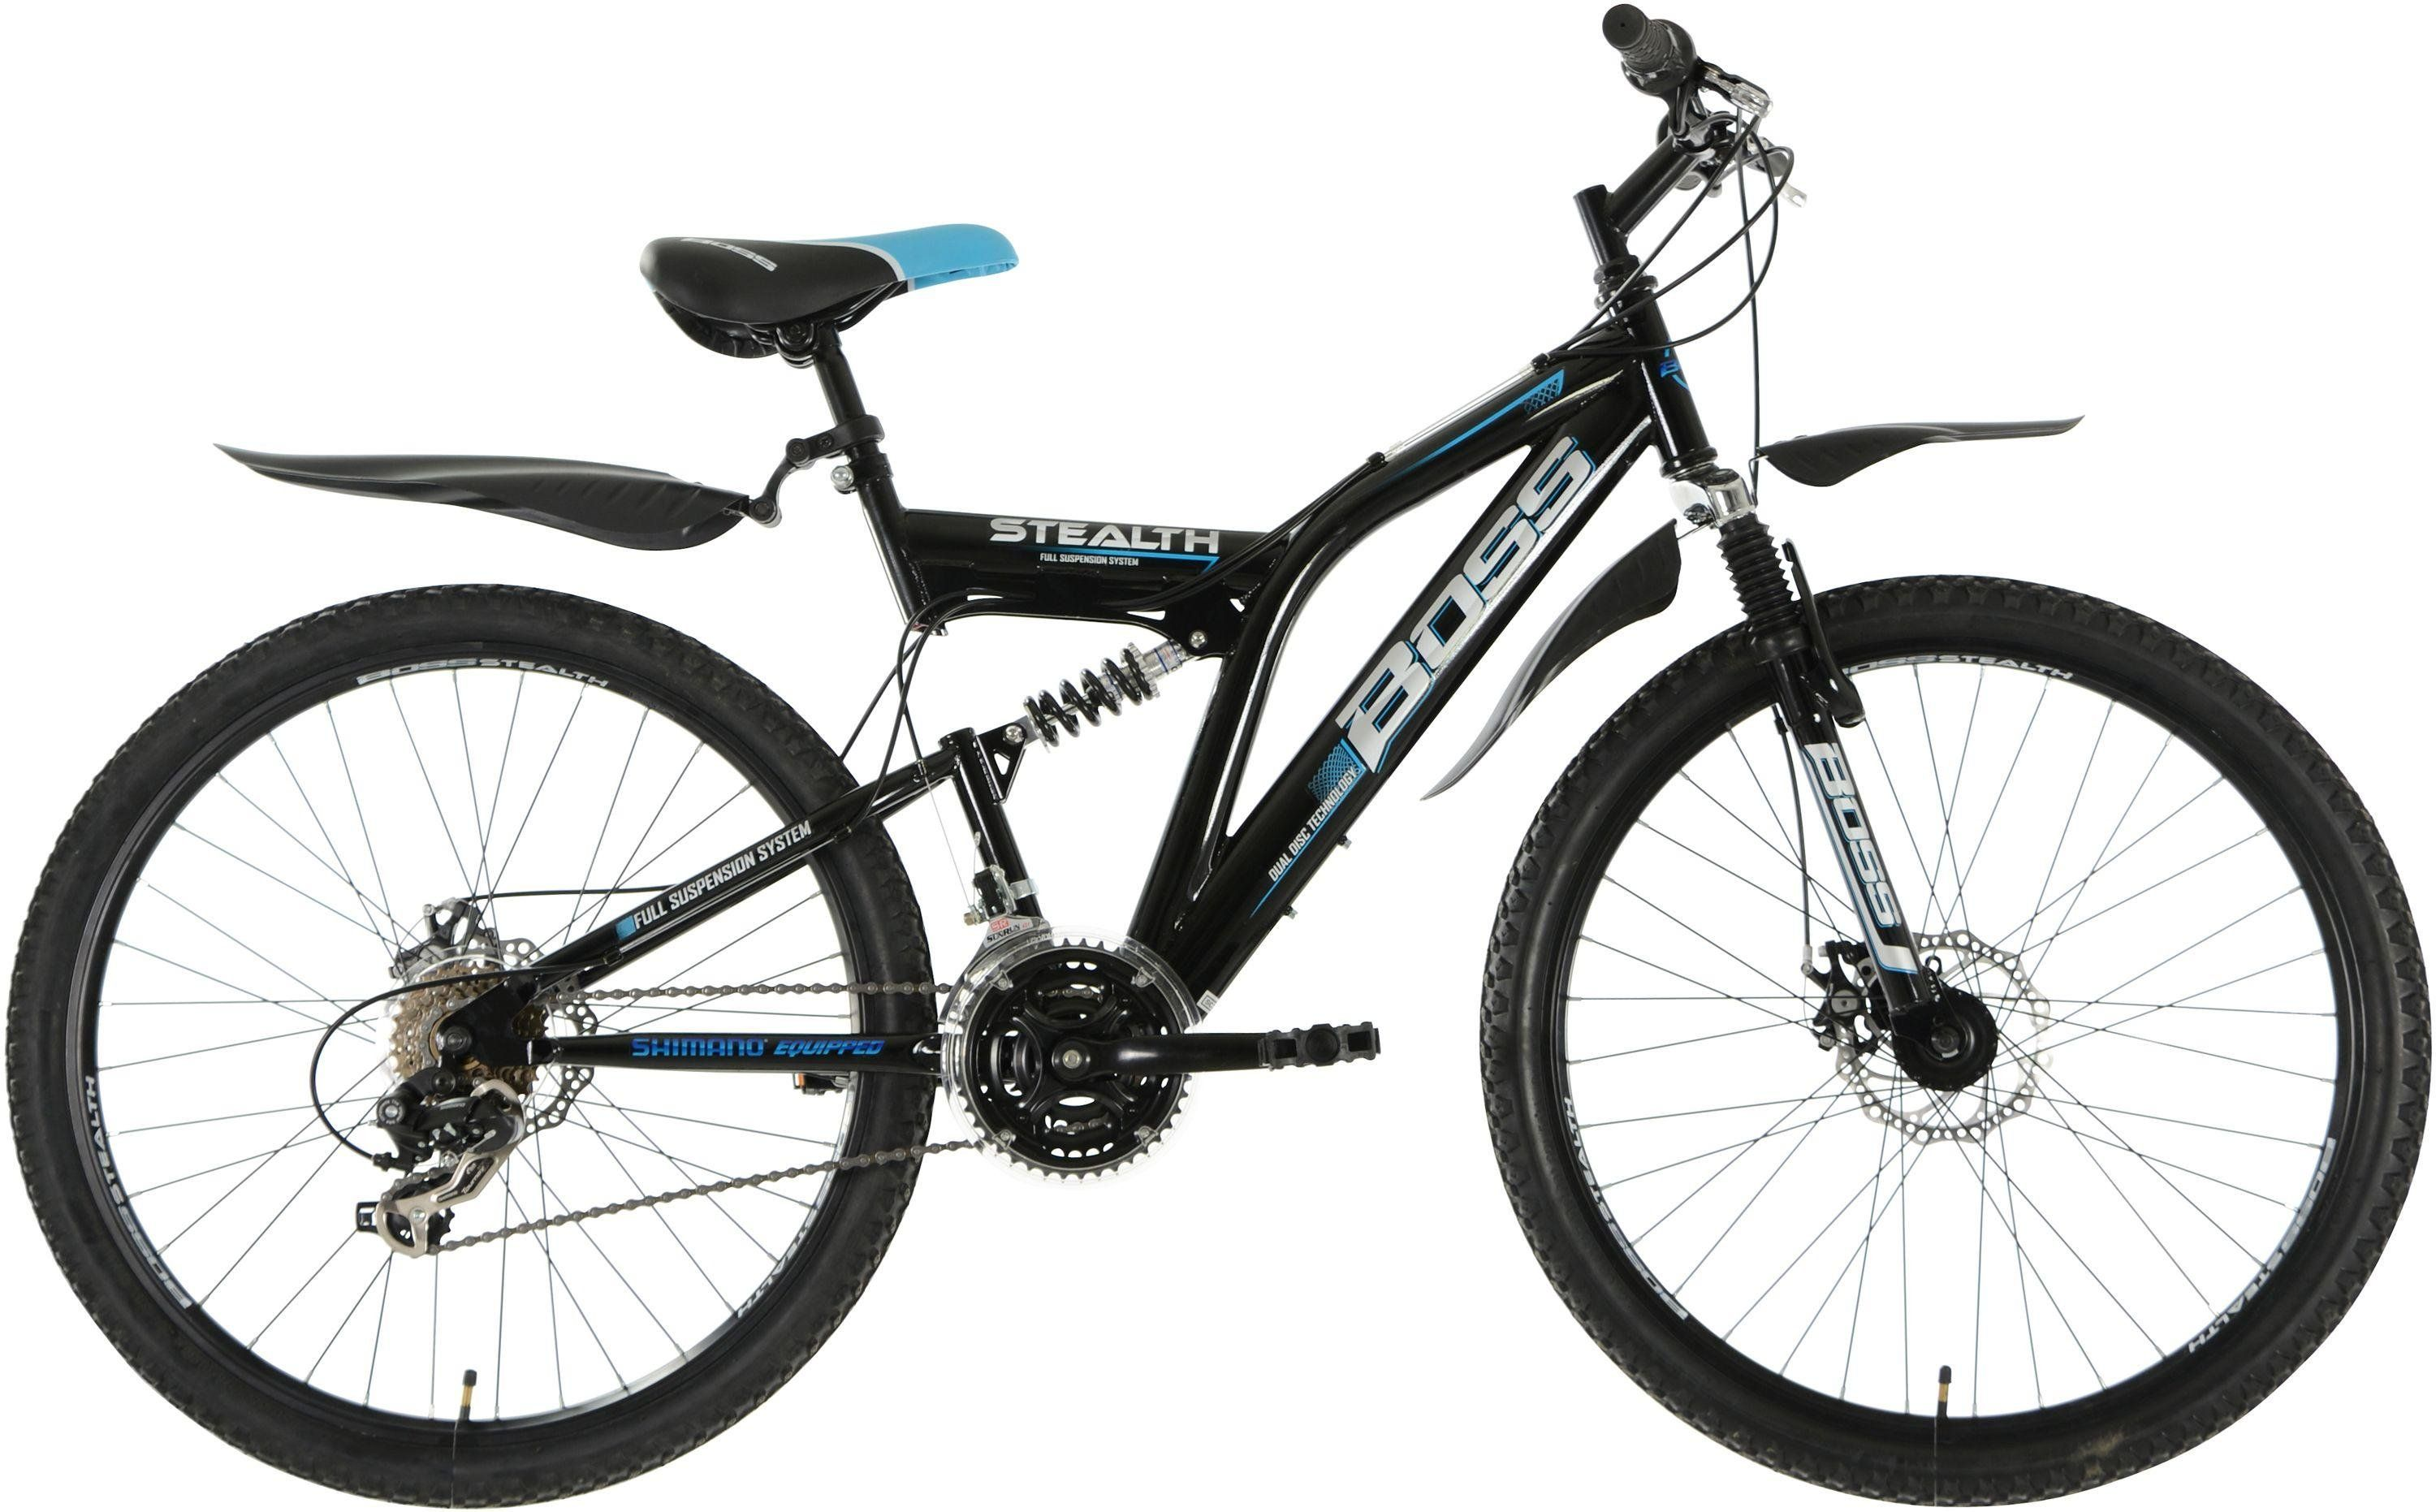 Boss Stealth 26 Inch Wheel Size Mens Mountain Bike In 2020 Mens